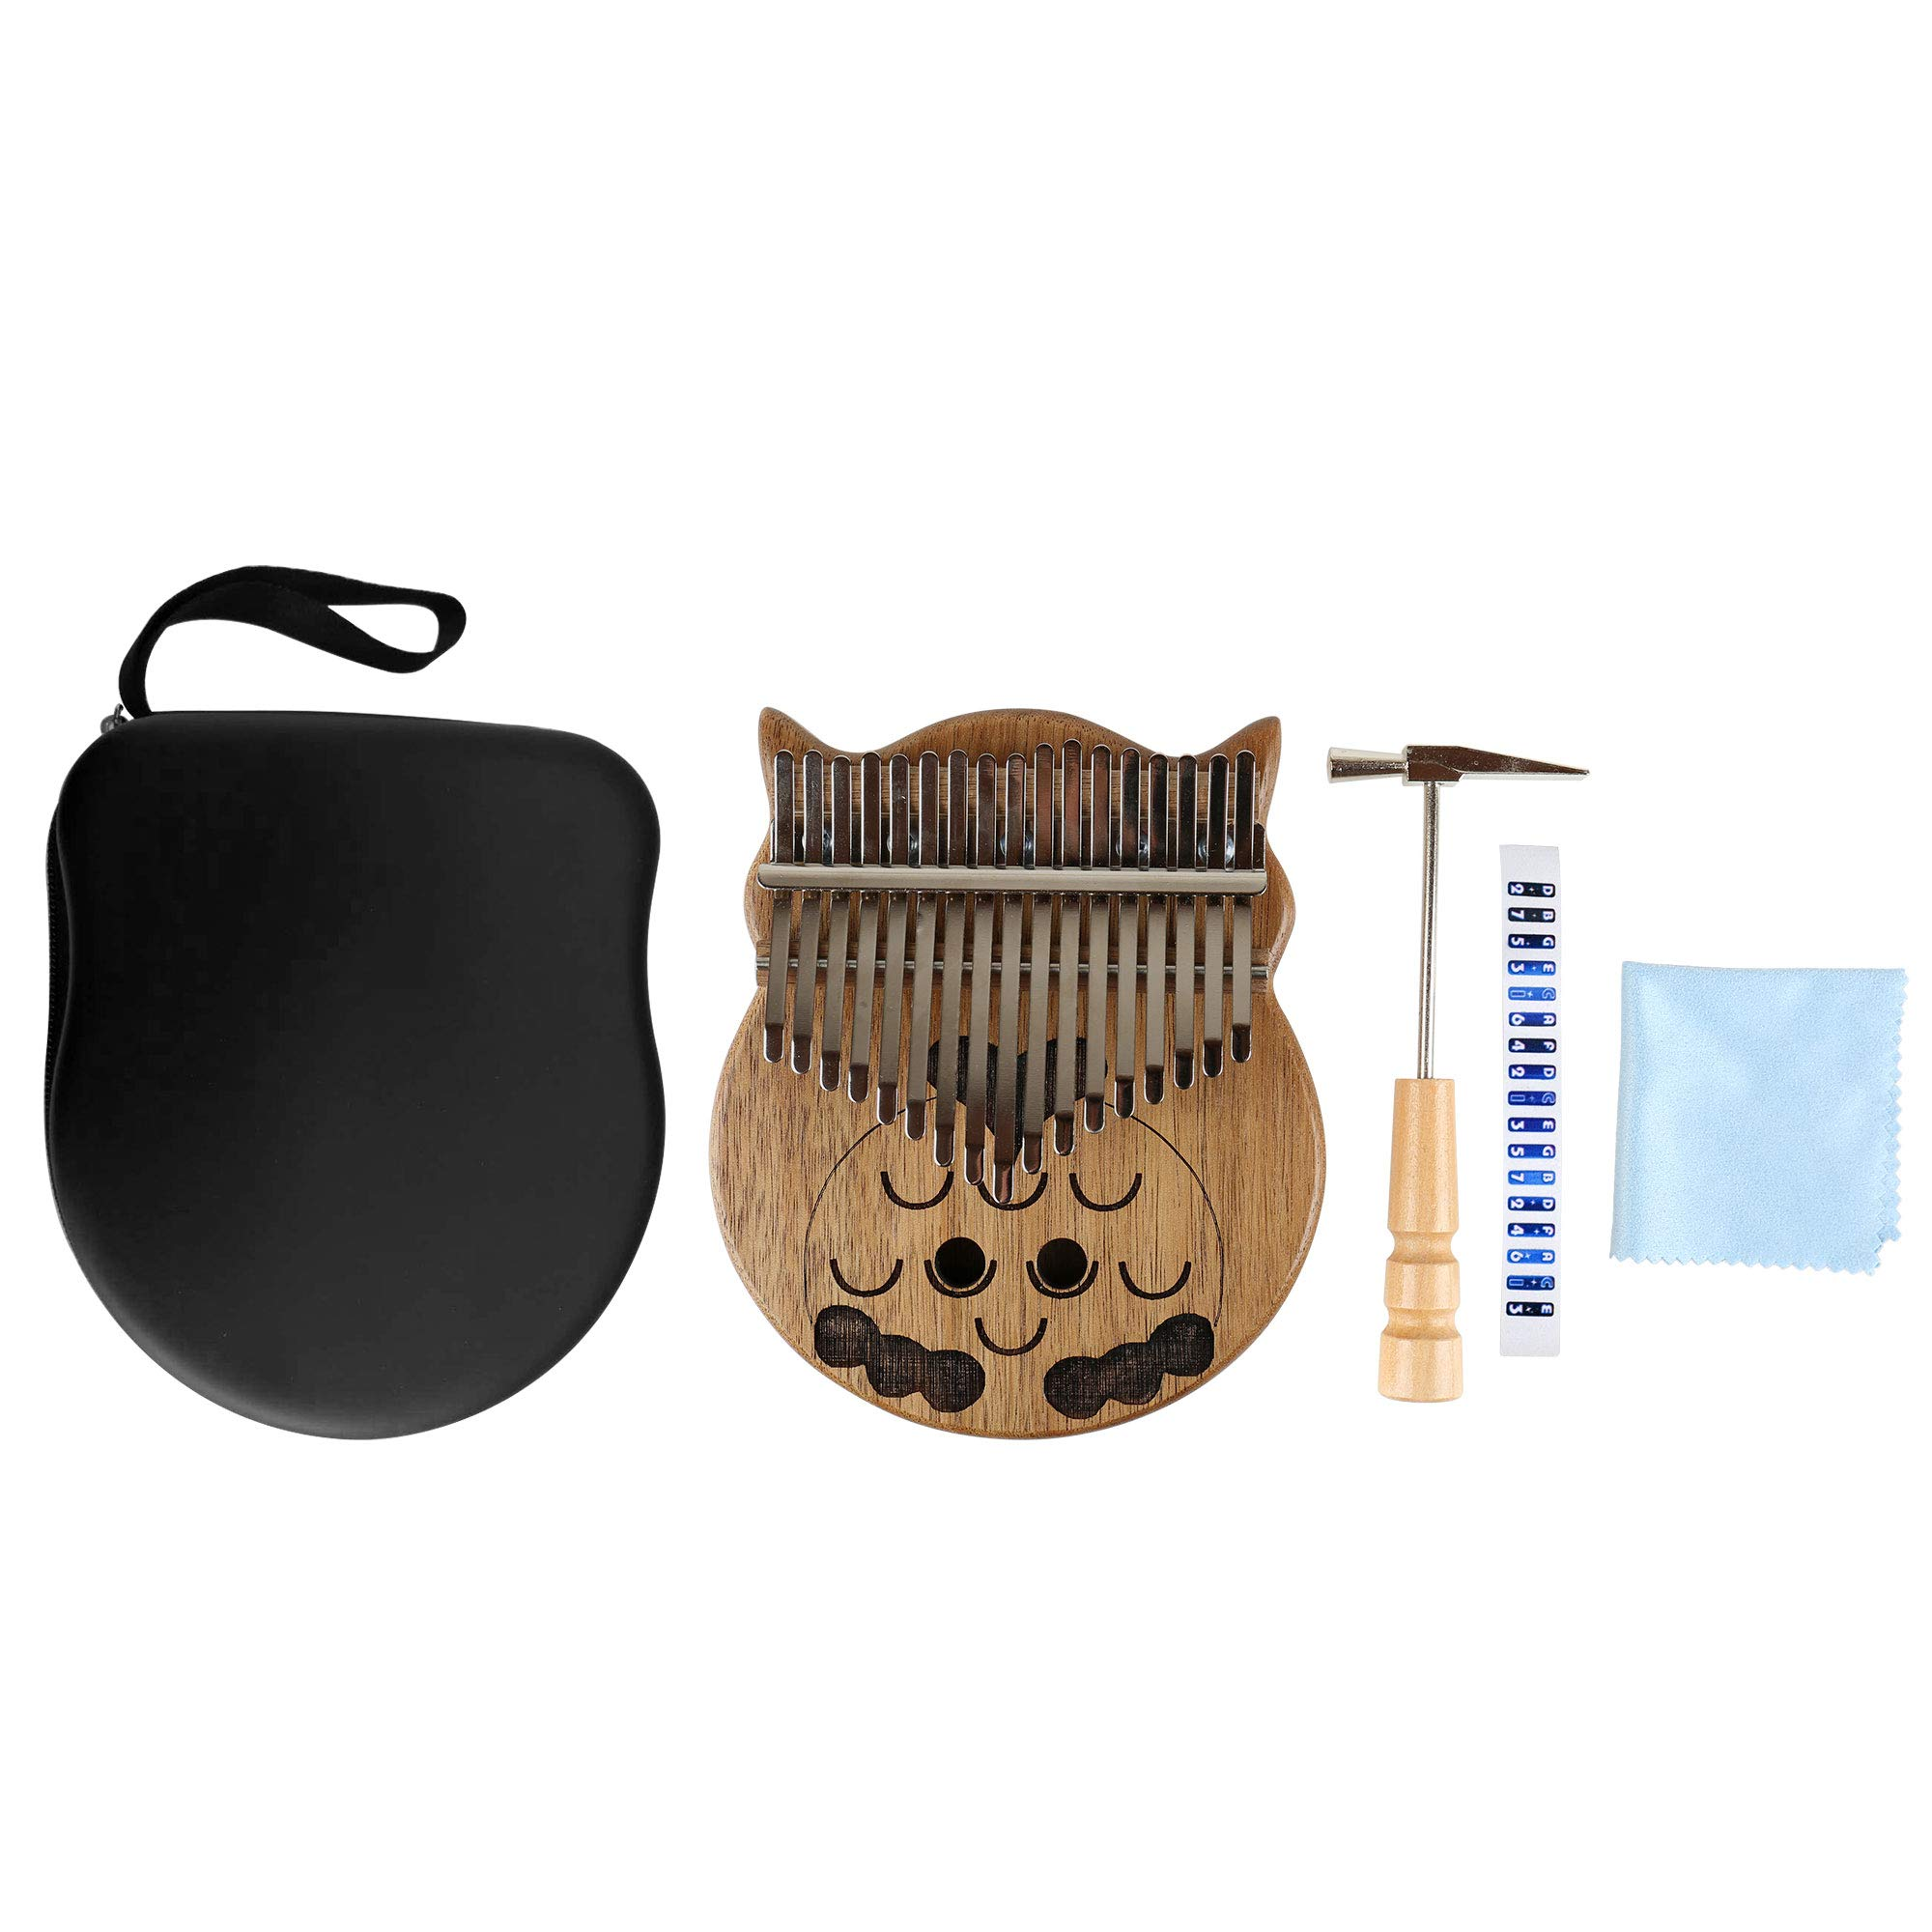 longdafeiUS Kalimba, Owl ThumbPianowith 17 Key Finger Piano Mbira Solid Walnut Wood Thumb Piano Finger Percussion Musical Gift by longdafeiUS (Image #7)